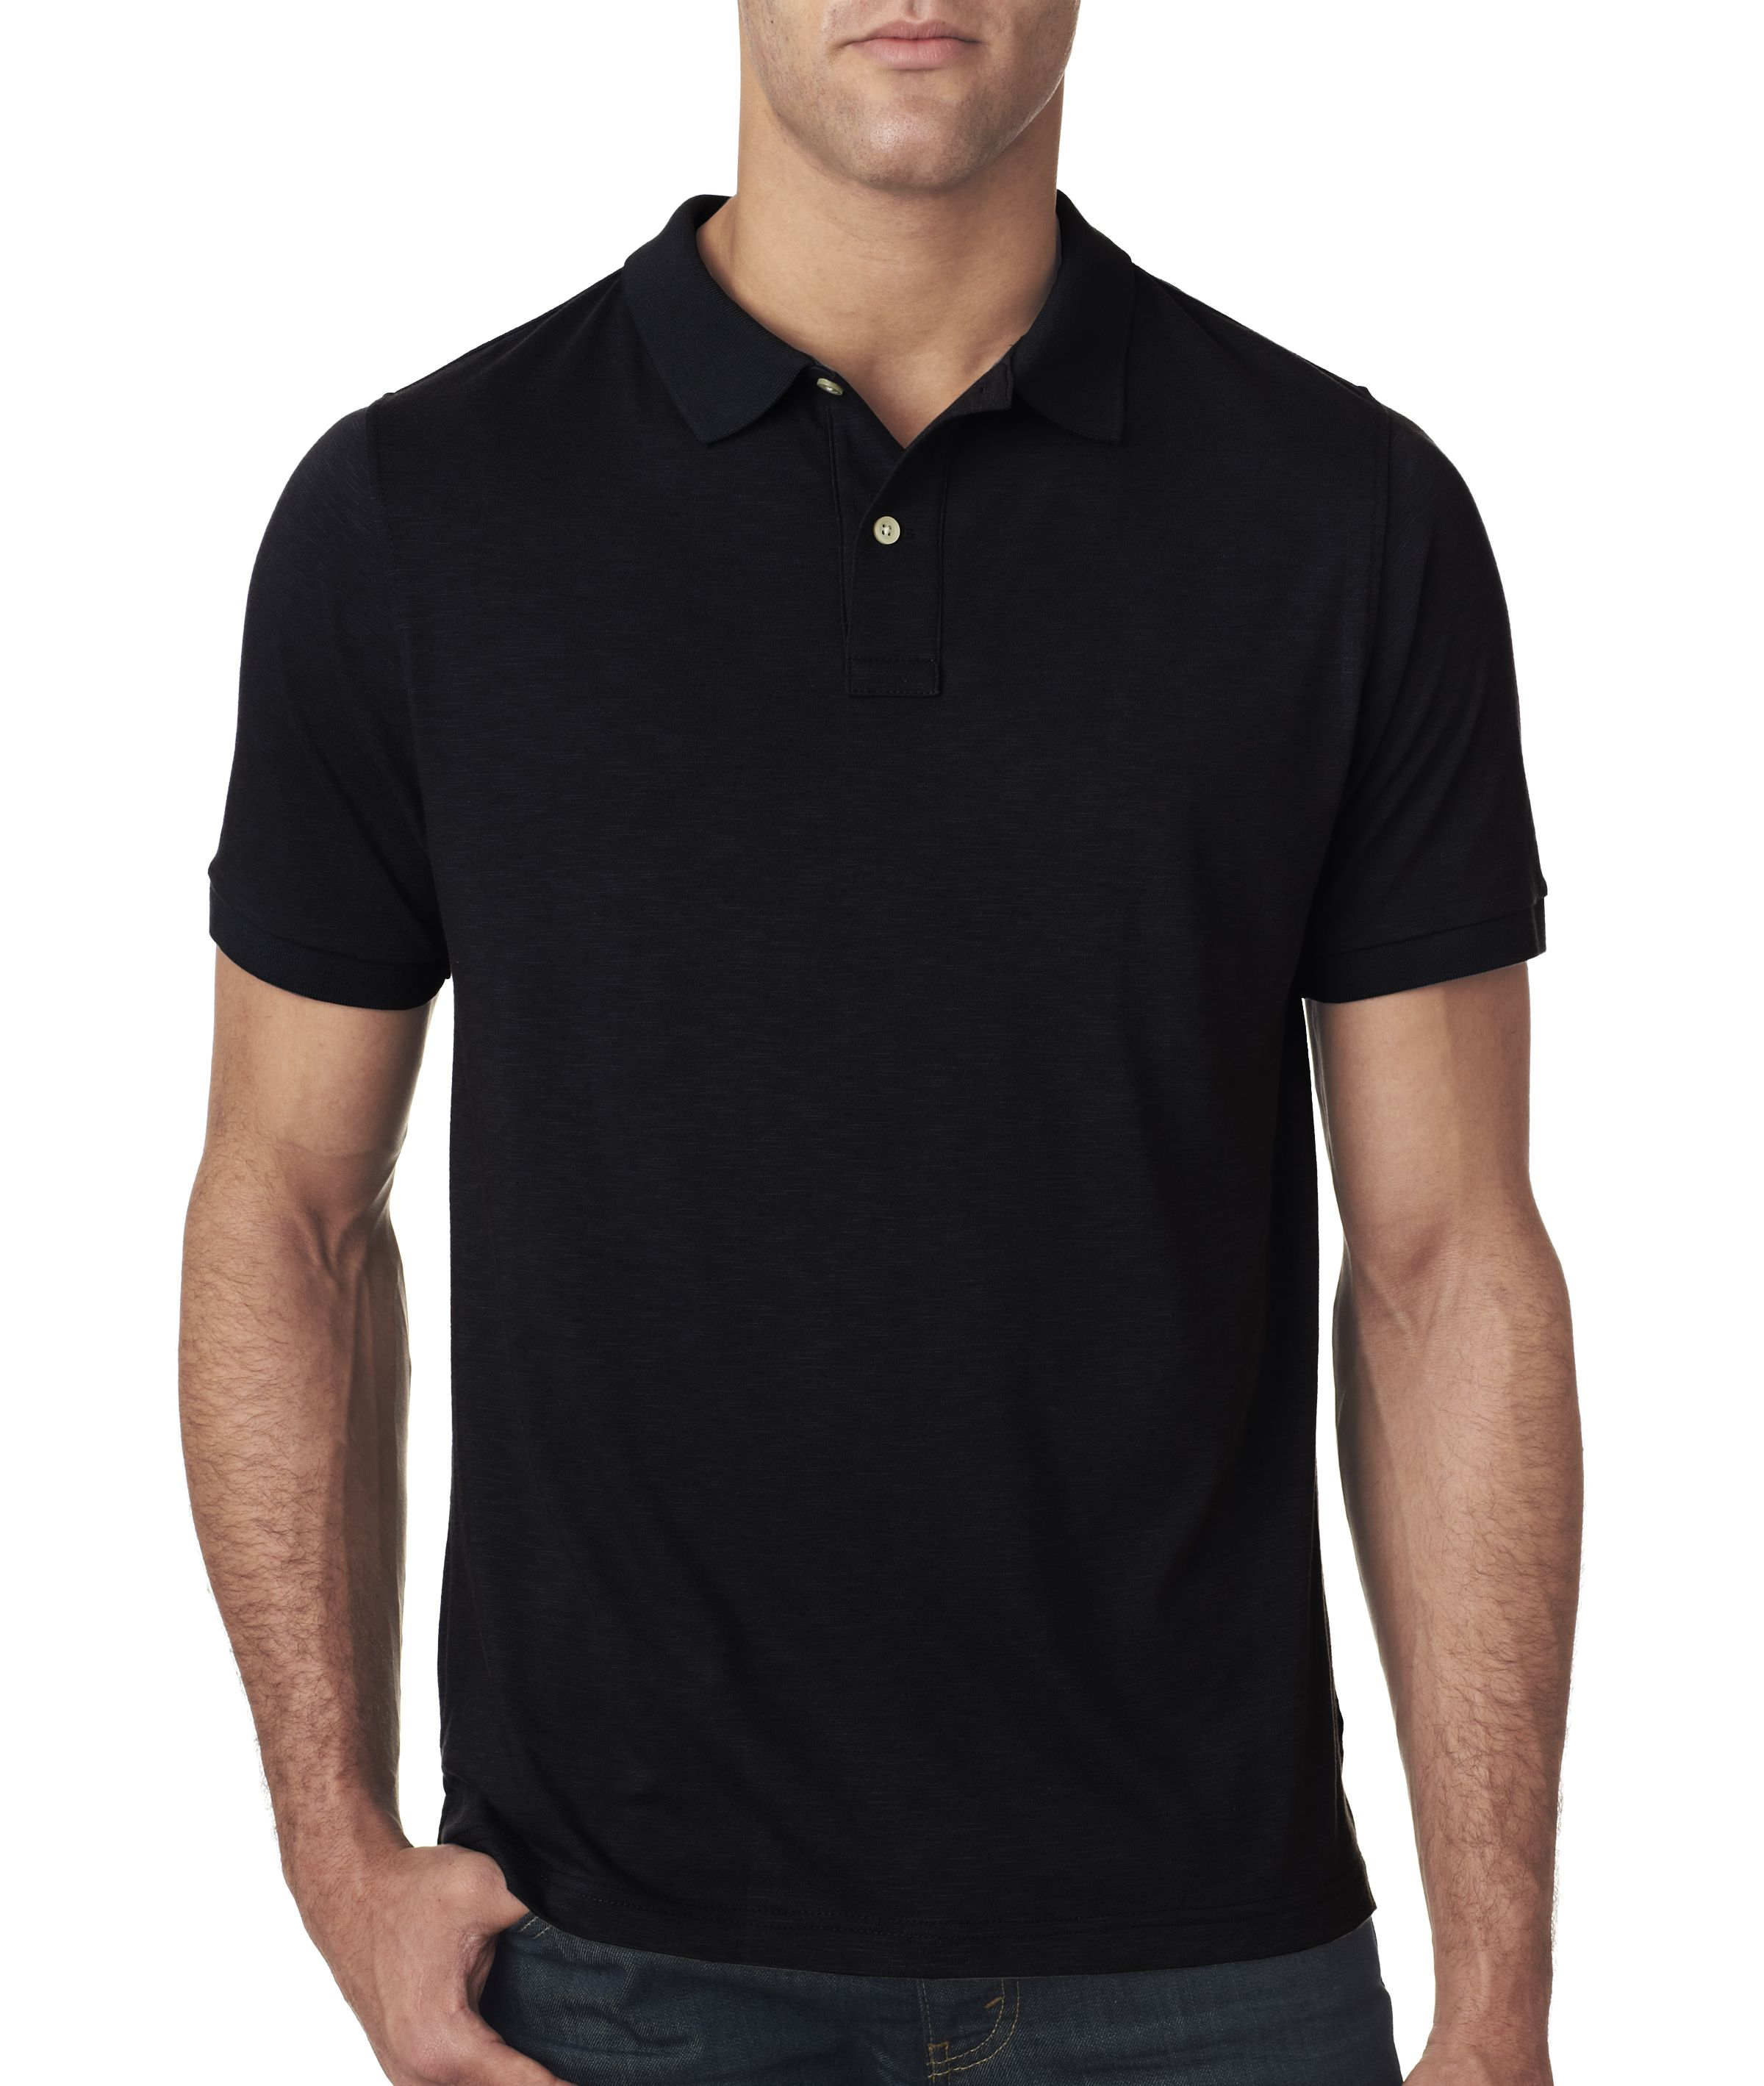 Next Level Apparel Men's Slub Polo Shirt. 6420 | Black ...